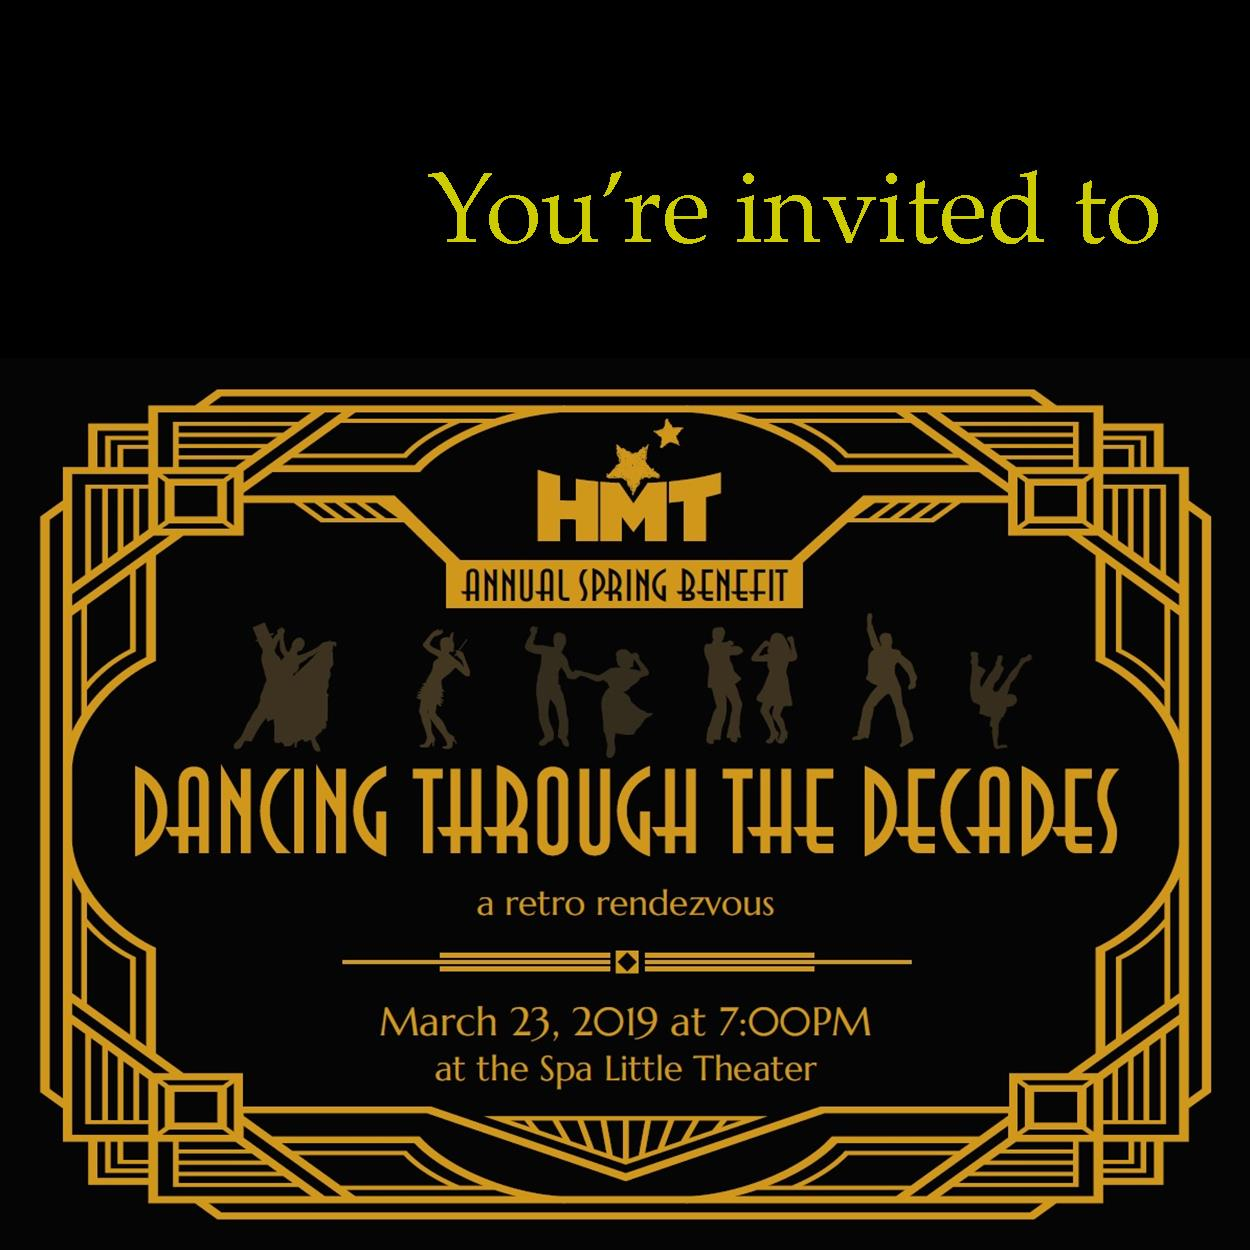 HMT's Spring Benefit Dancing Through the Decades